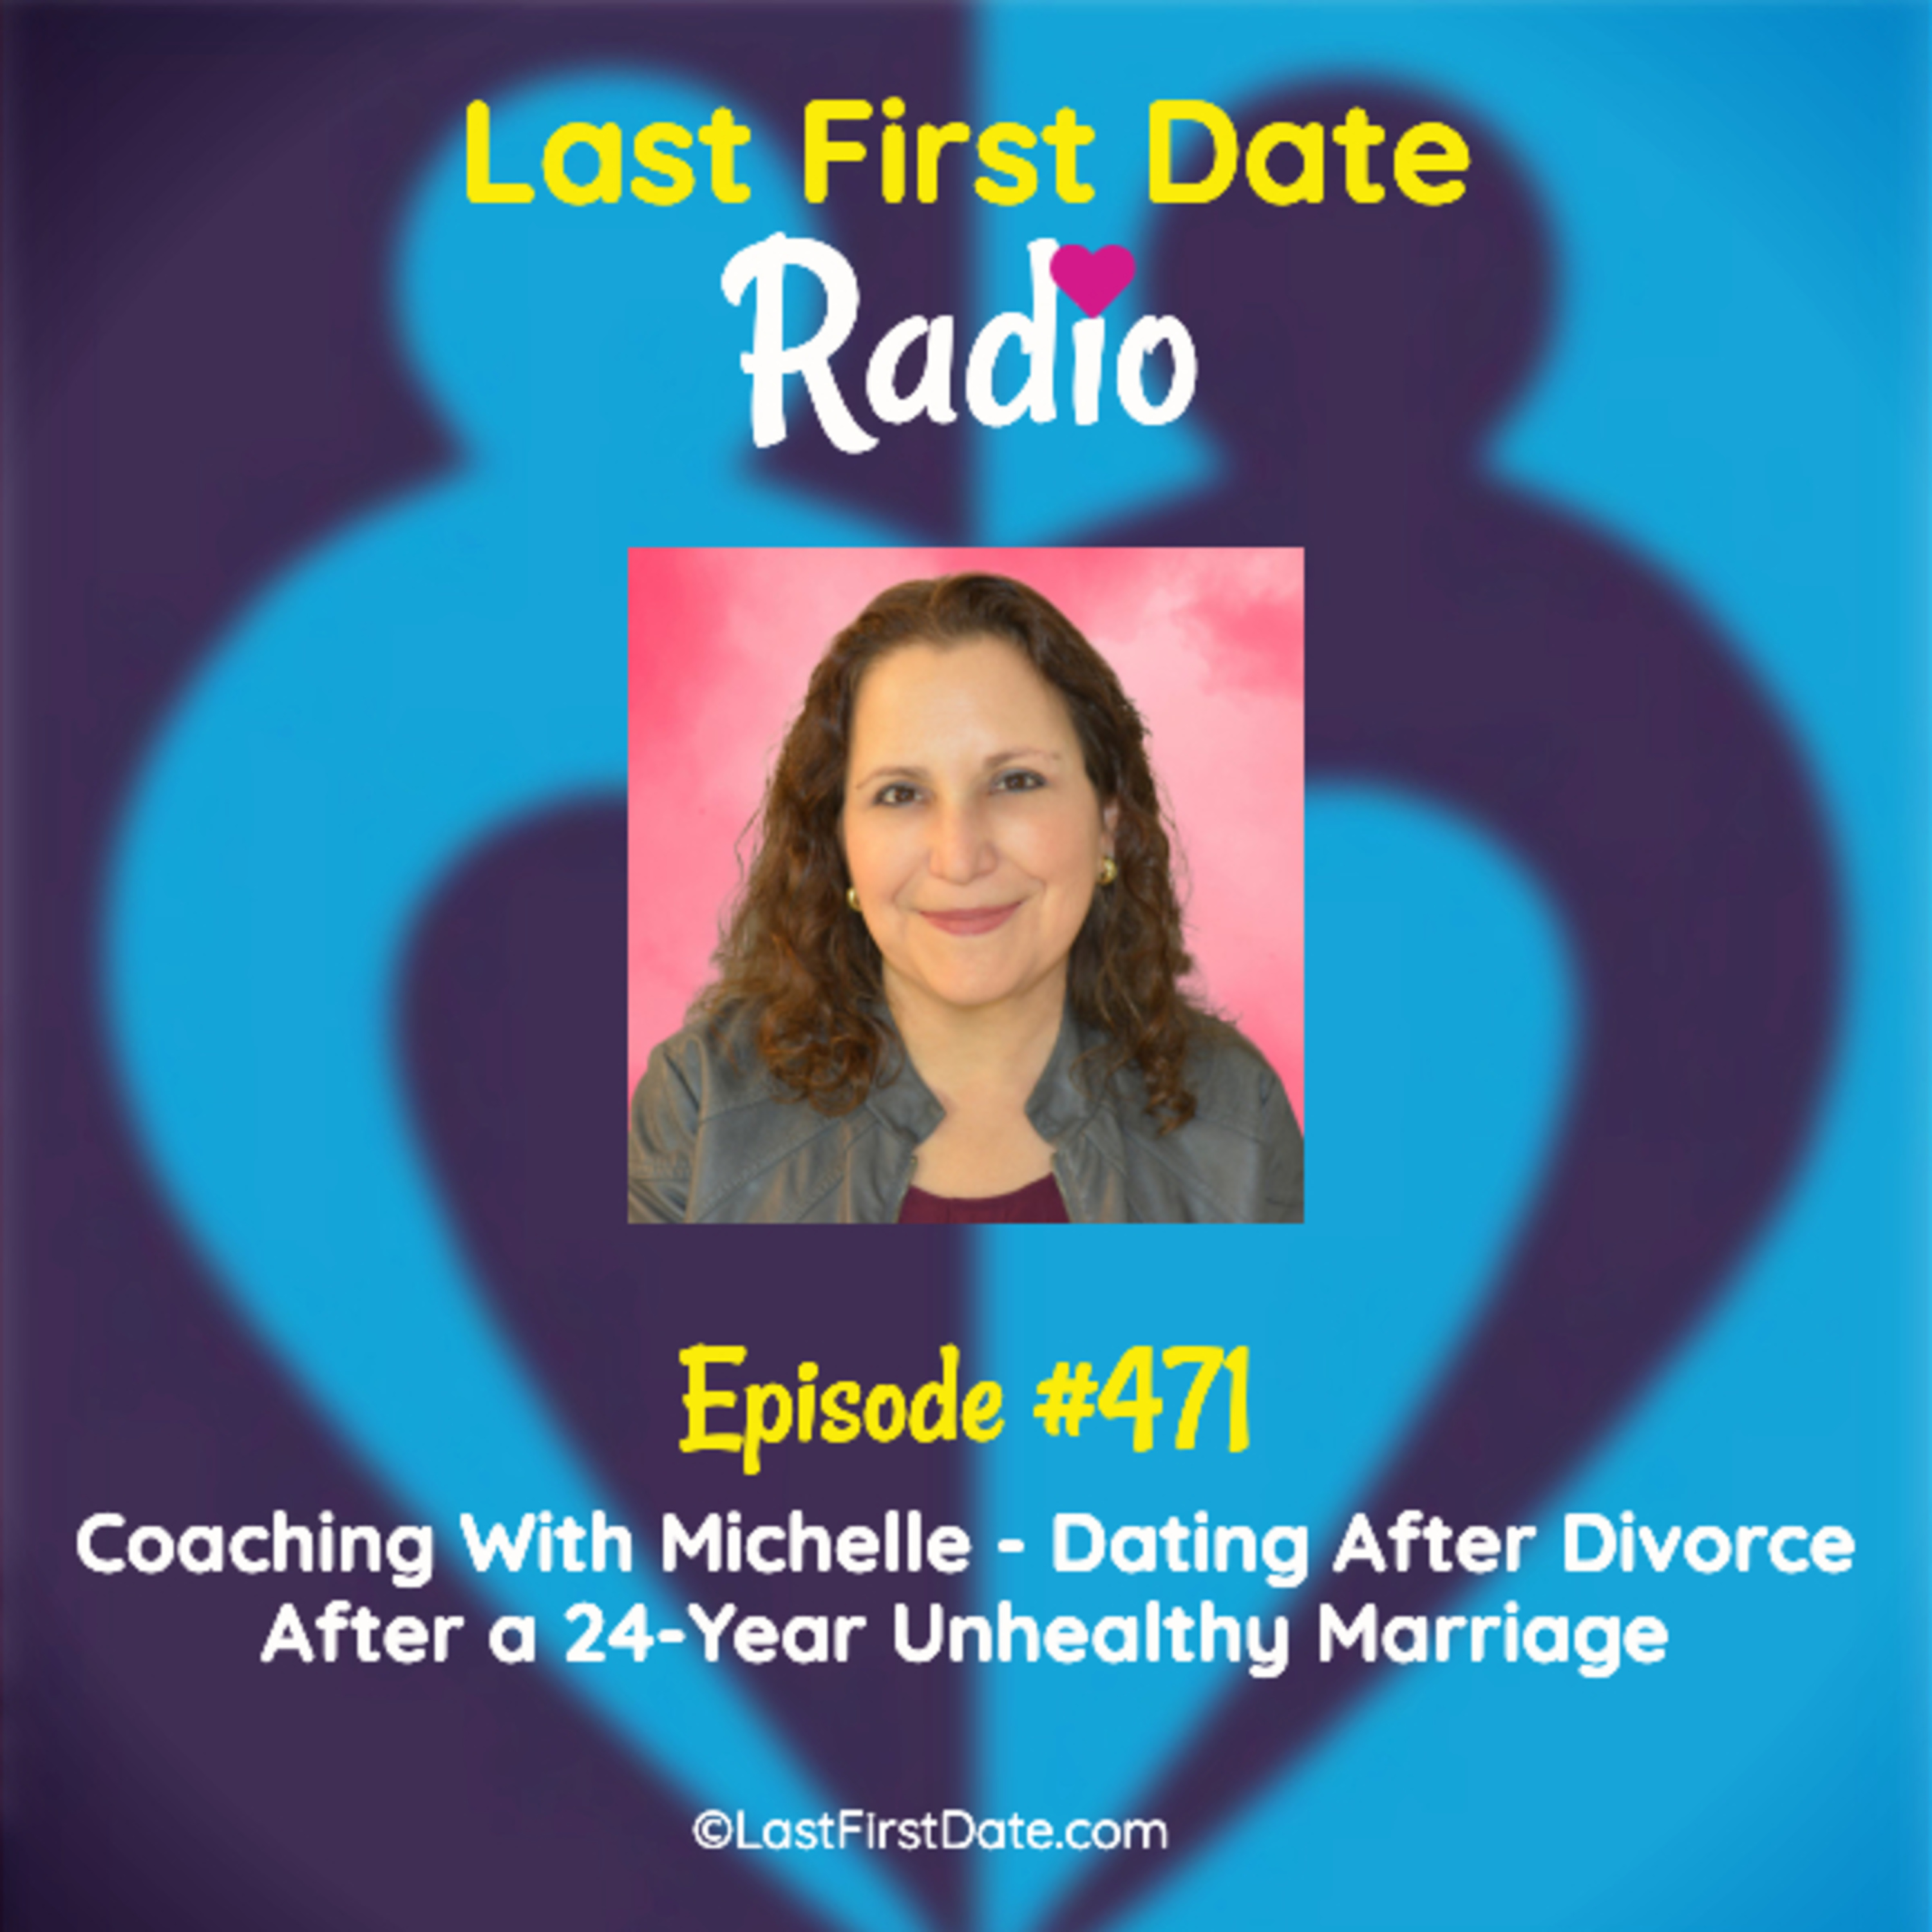 Last First Date Radio - EP 471: Coaching With Michelle - Dating After Divorce After a 24-Year Unhealthy Marriage